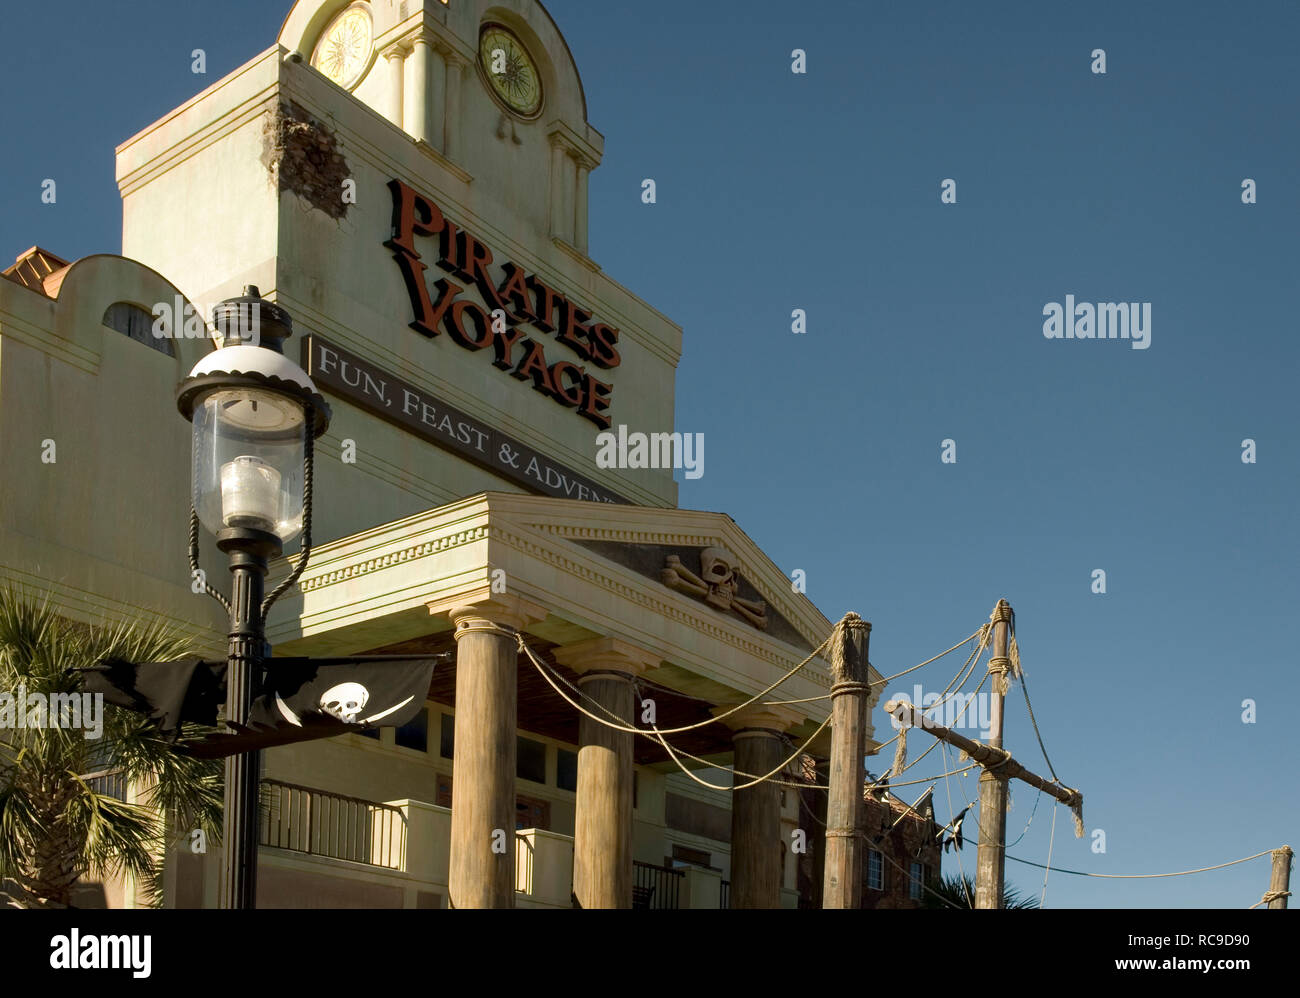 Pirates Voyage Dinner Theater at Myrtle Beach South Carolina, USA - Stock Image